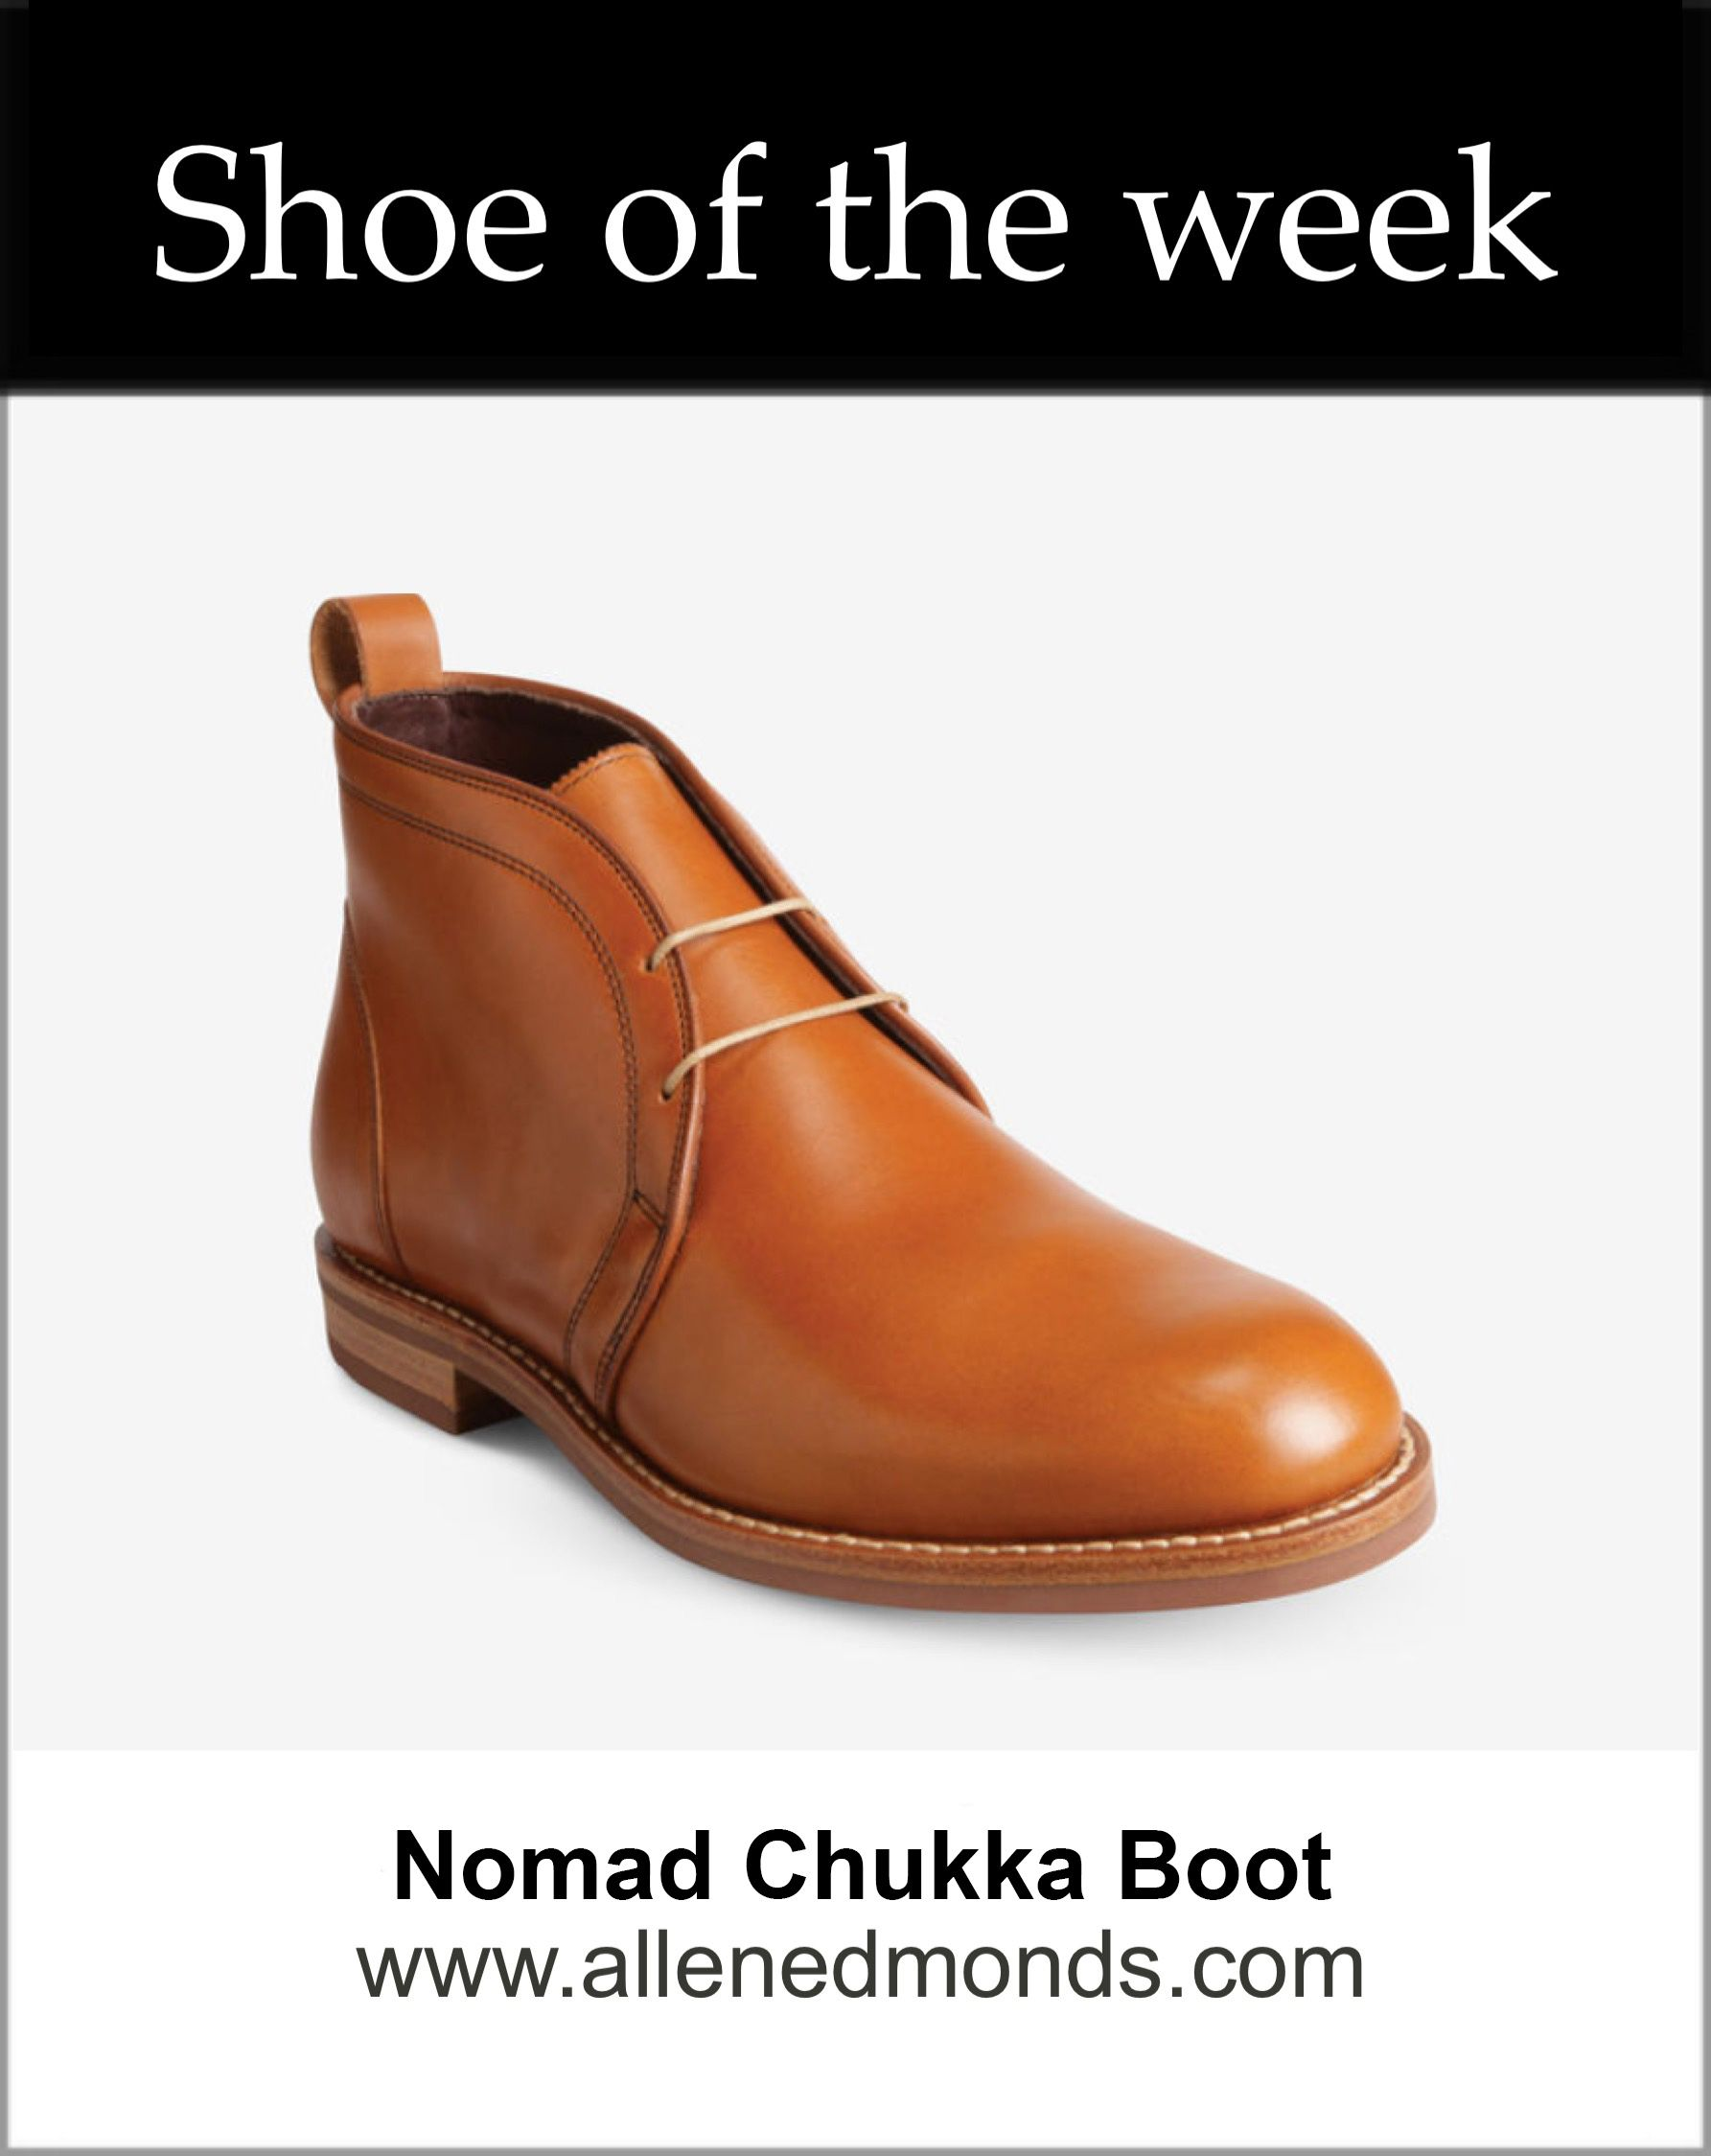 9f10cbb42b1 Shoe of the Week: the Allen Edmonds Nomad. | Shoe of the Week in ...